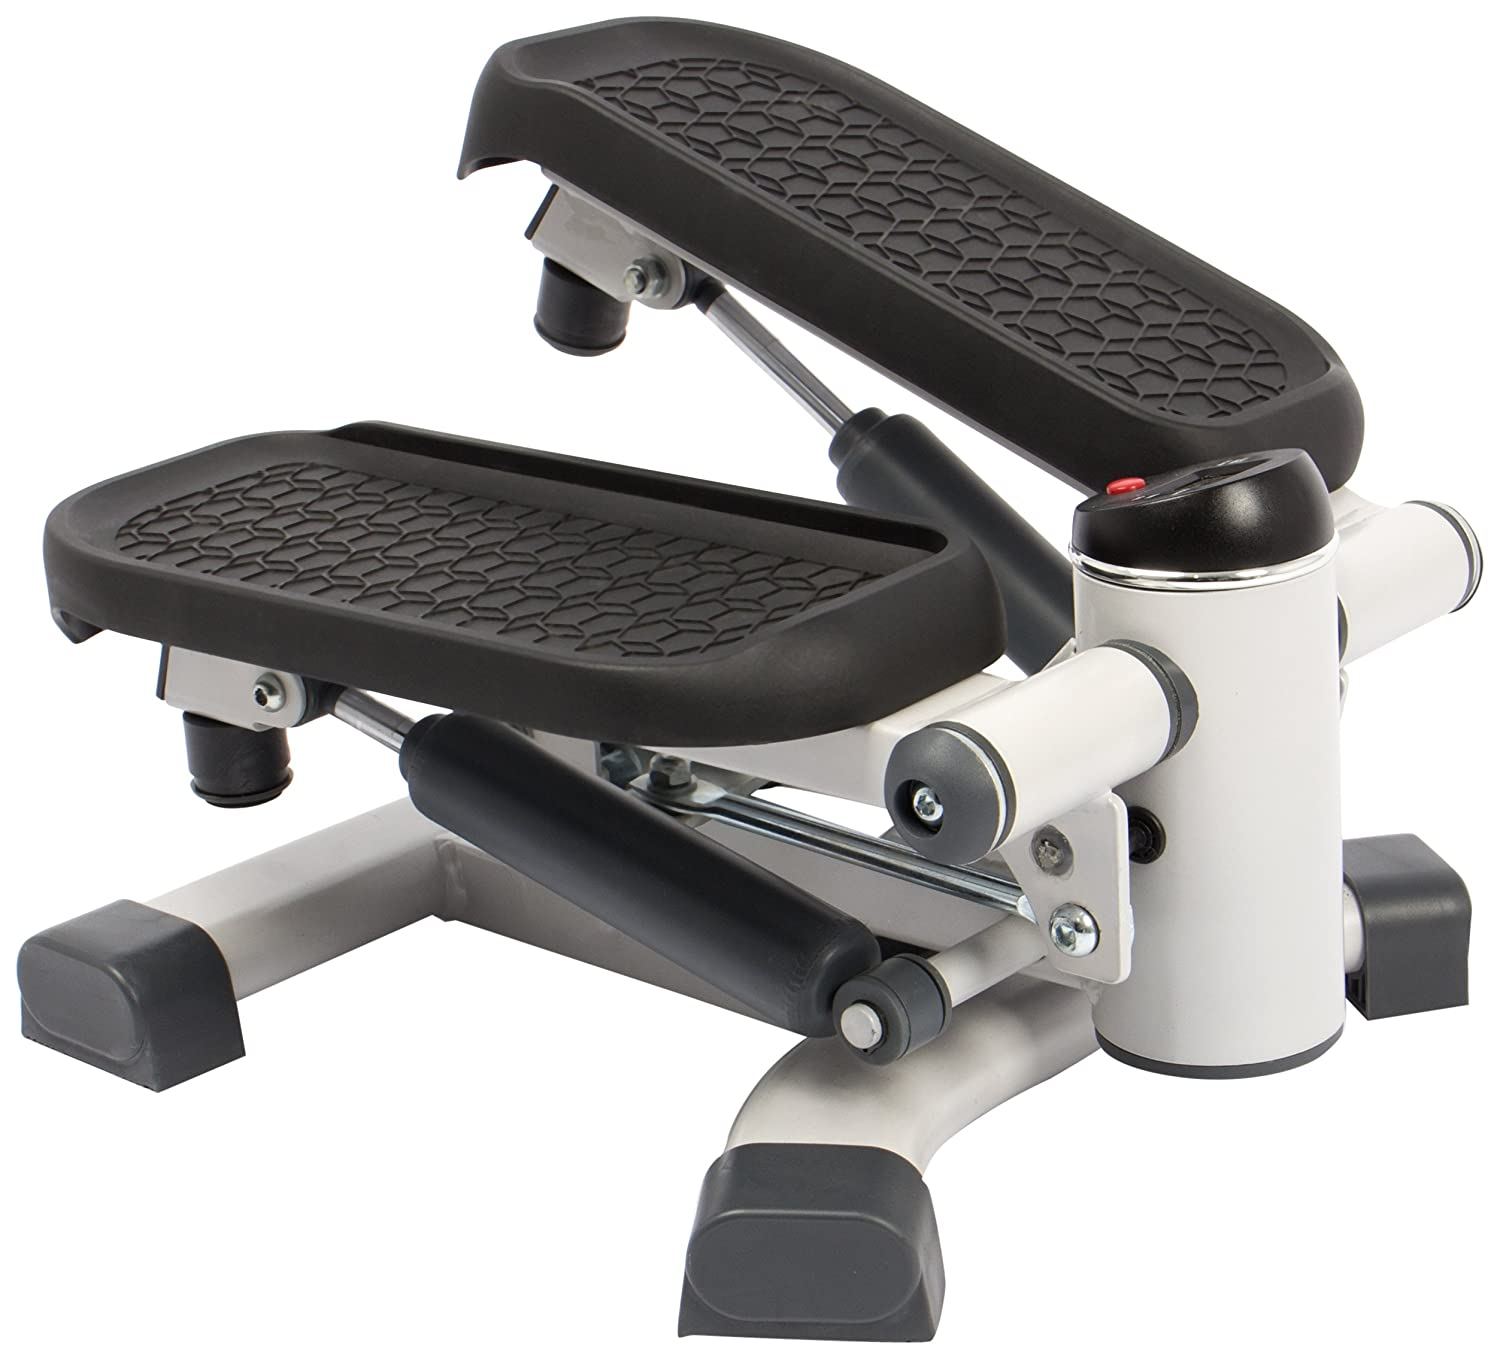 SportPlus 2 in 1 Dual Exercise Stepper